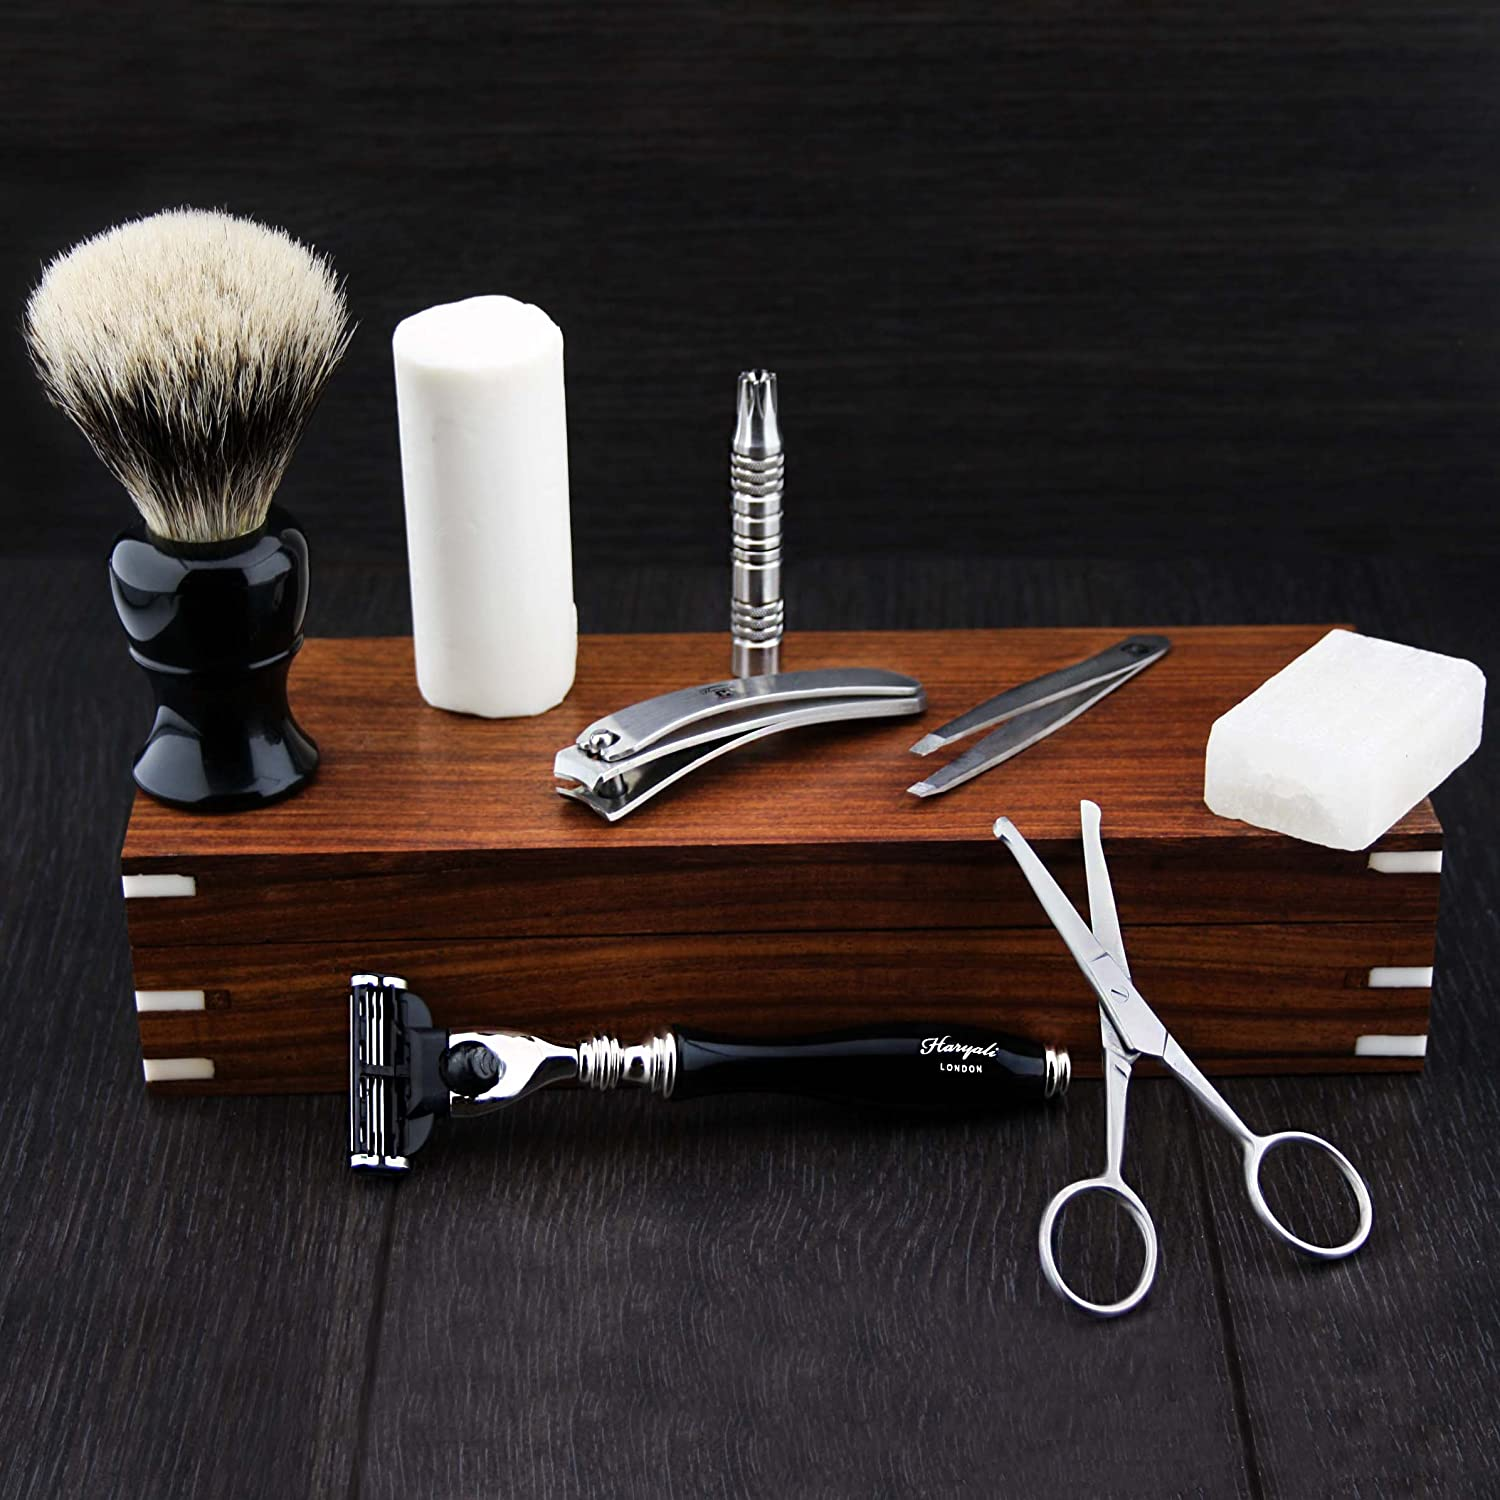 Stunning 9 Pcs Haryali London Made Men's Shaving/Grooming Kit/Set (Gillette Mach 3) Razor Hand Assembled Classic Silver tip Badger Hair Brush,Shaving Soap, Alum Block, Nose trimmer, Nose Scissor, Tweezers, Nail Cutter In Antique Rose Wood Box .Perfect Comb